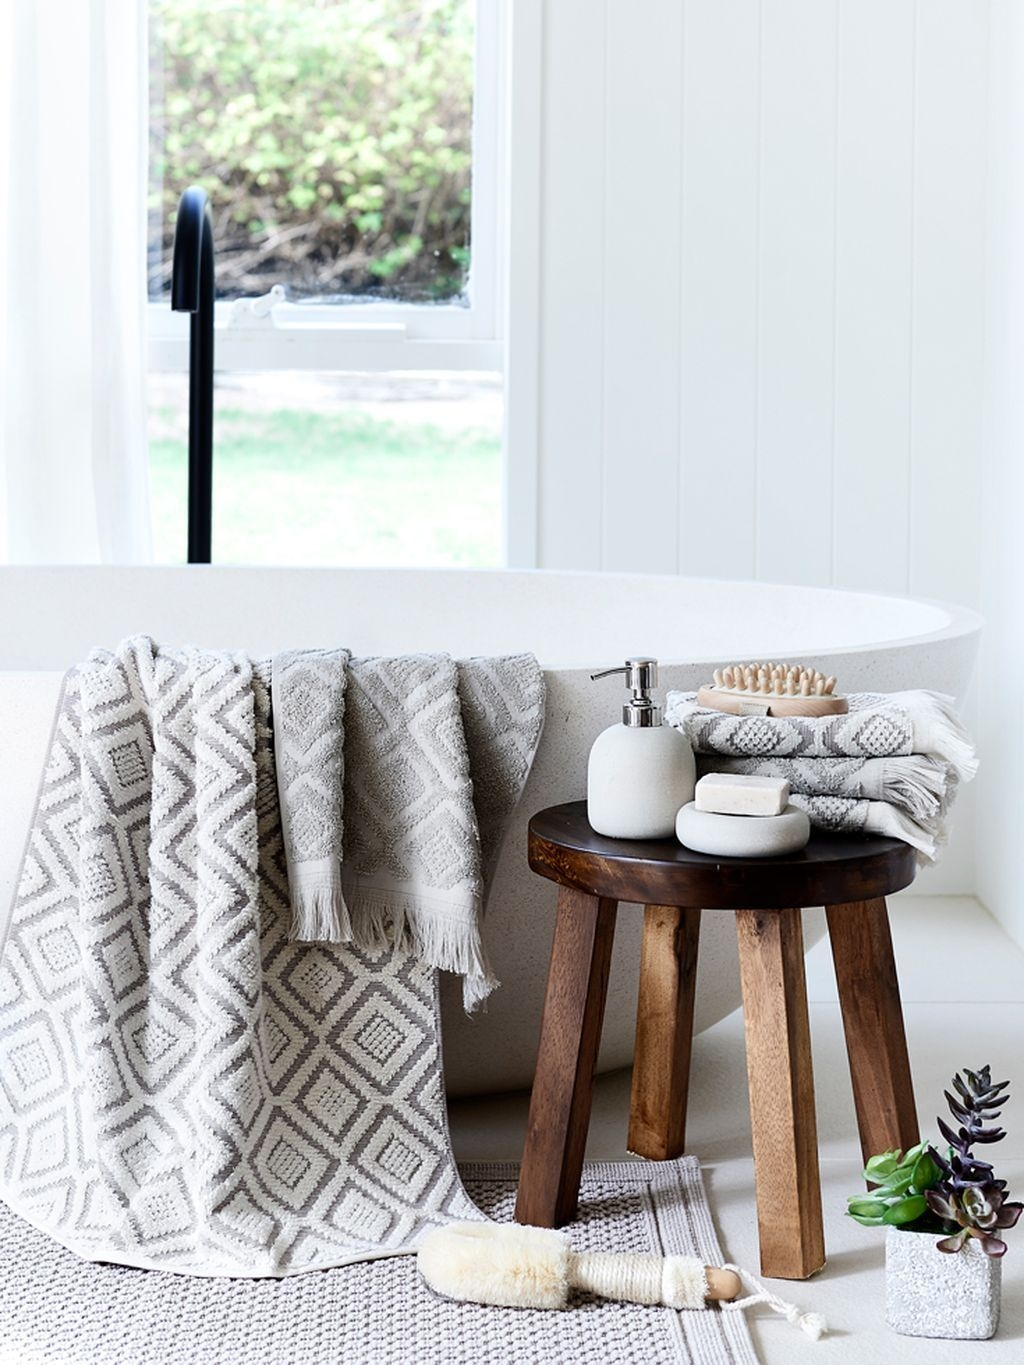 Awesome Winter Themed Bathroom Decoration Ideas 30